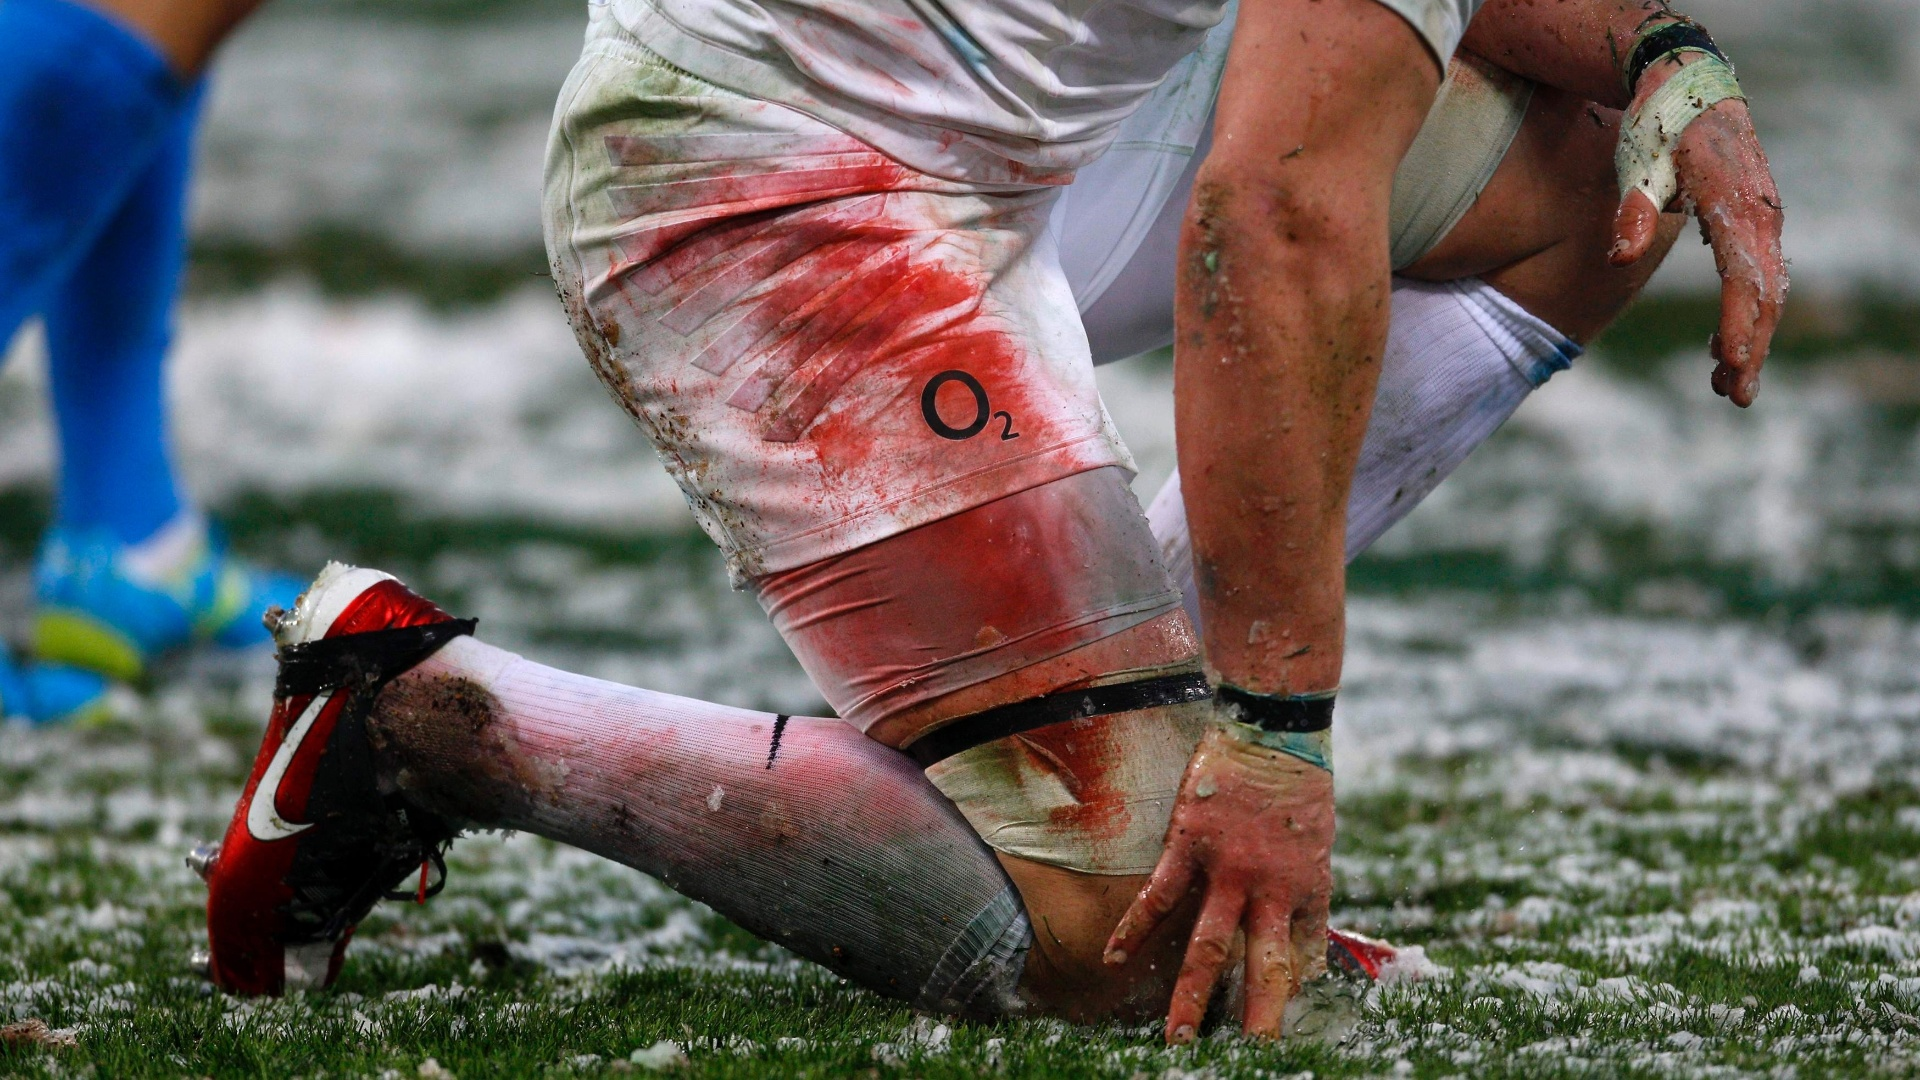 Phil Dowson, da Inglaterra, tem uniforme sujo de neve e tinta durante jogo contra a Itlia em torneio de rgbi